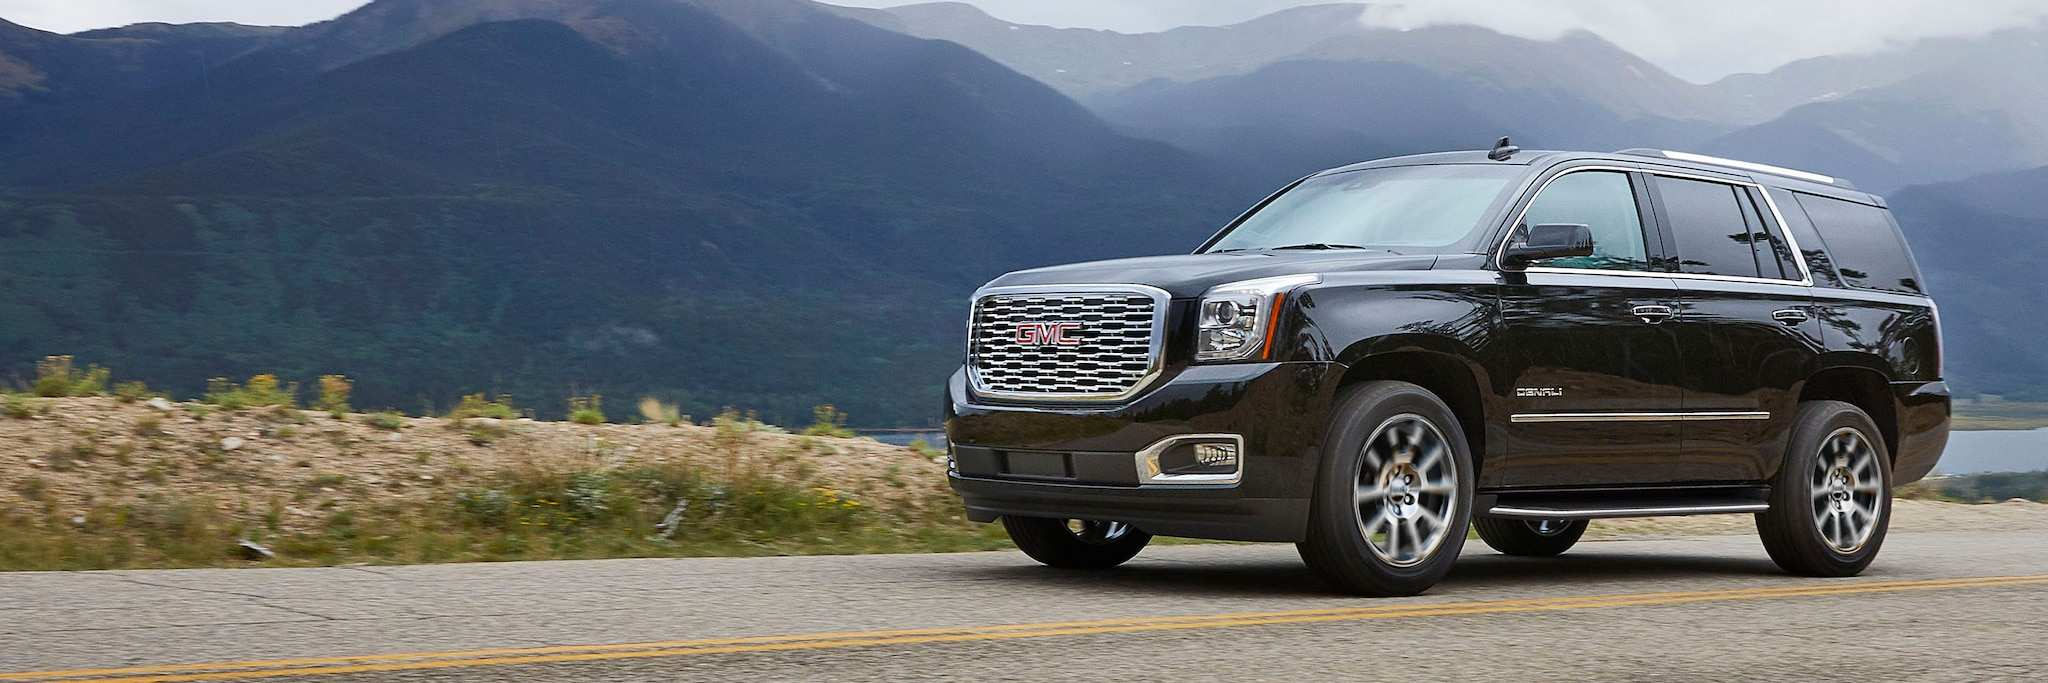 98 Gallery of 2020 Gmc Yukon Xl Slt Performance with 2020 Gmc Yukon Xl Slt